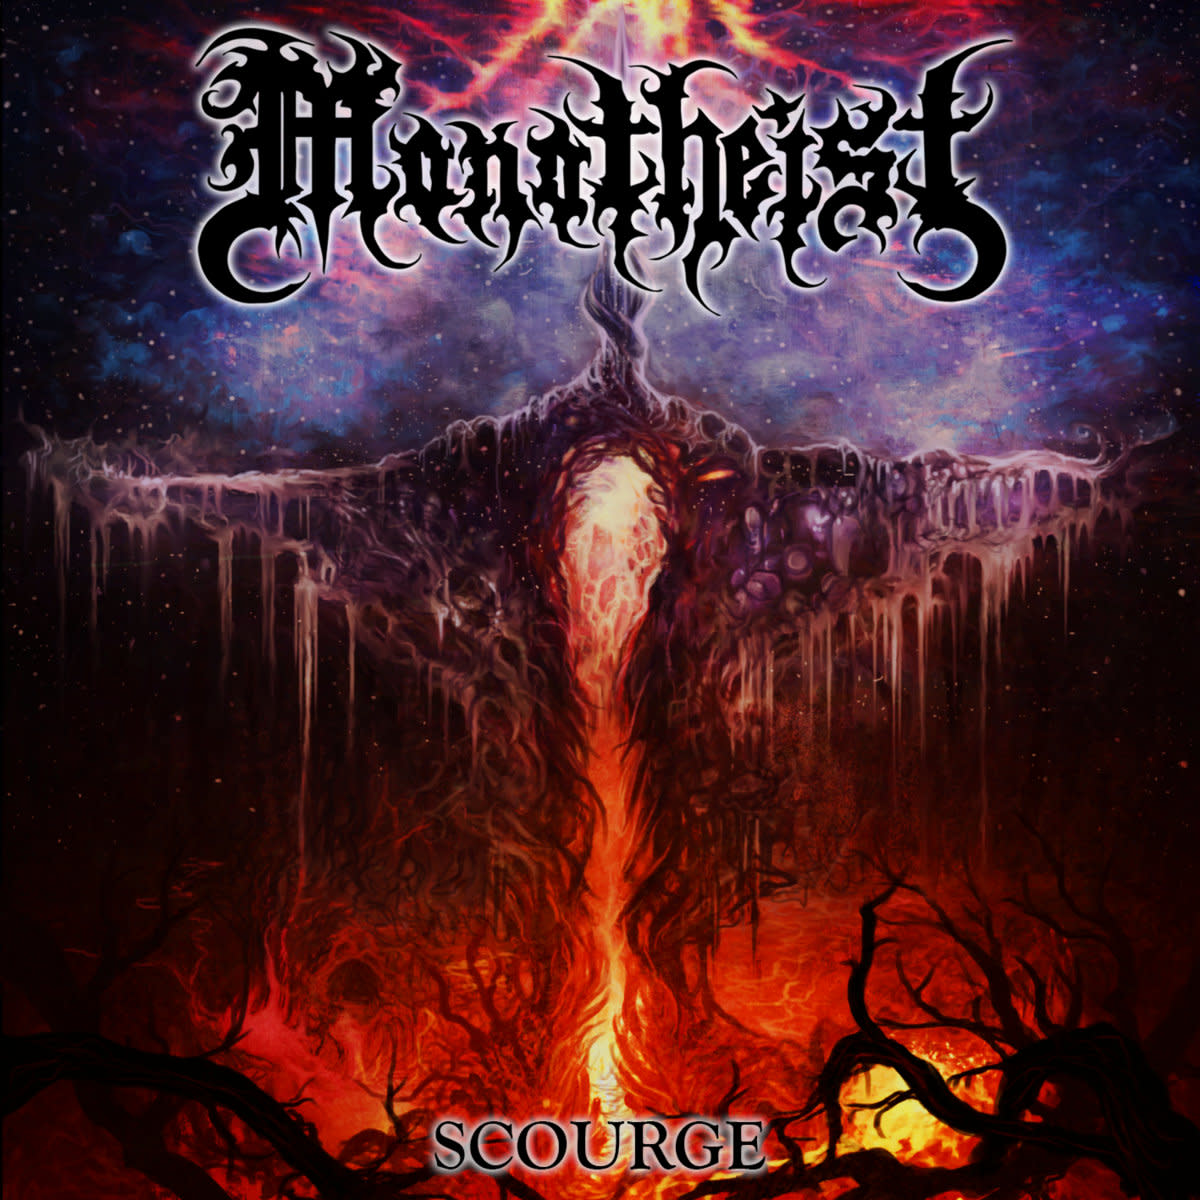 Scourge, he new full length from Florida death metallers, Monotheist